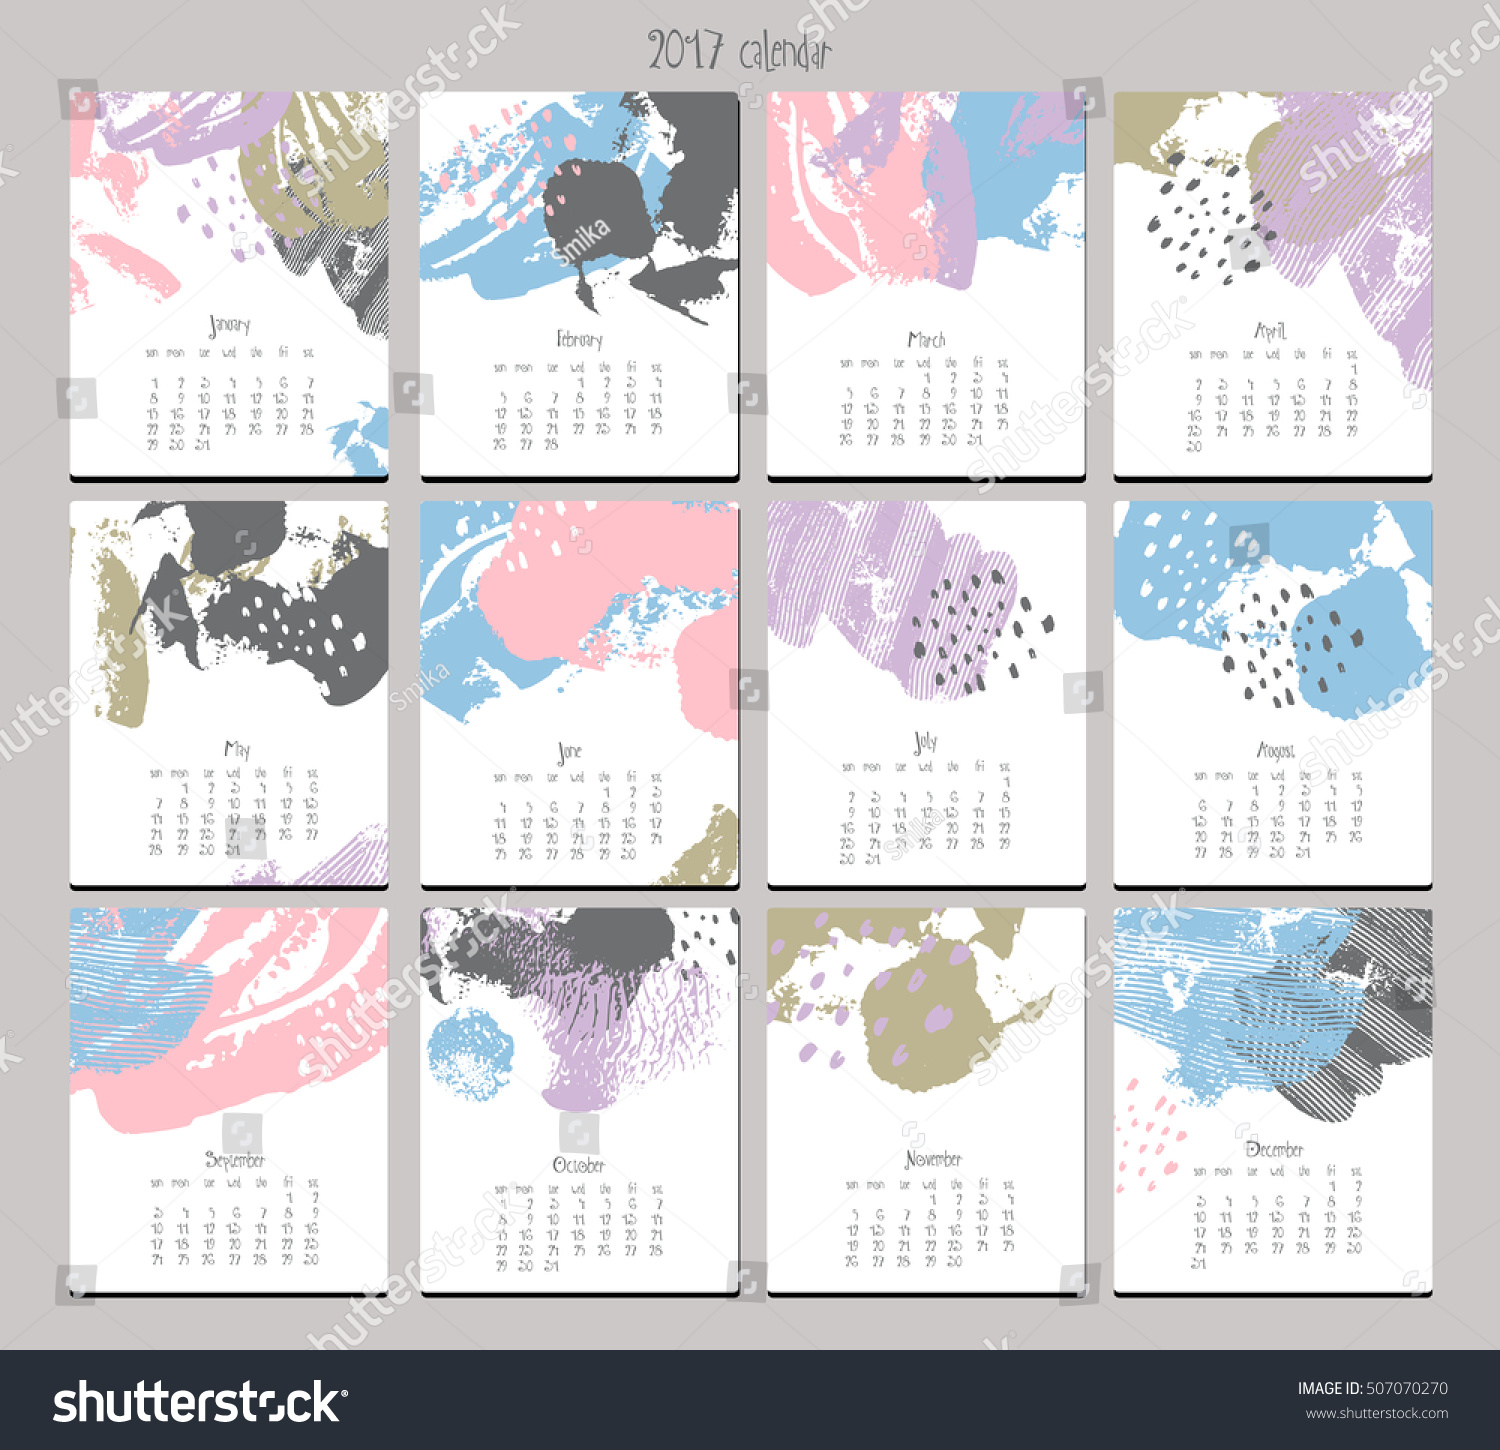 Calendar Templates Graphic Design : Creative calendar template with different textures